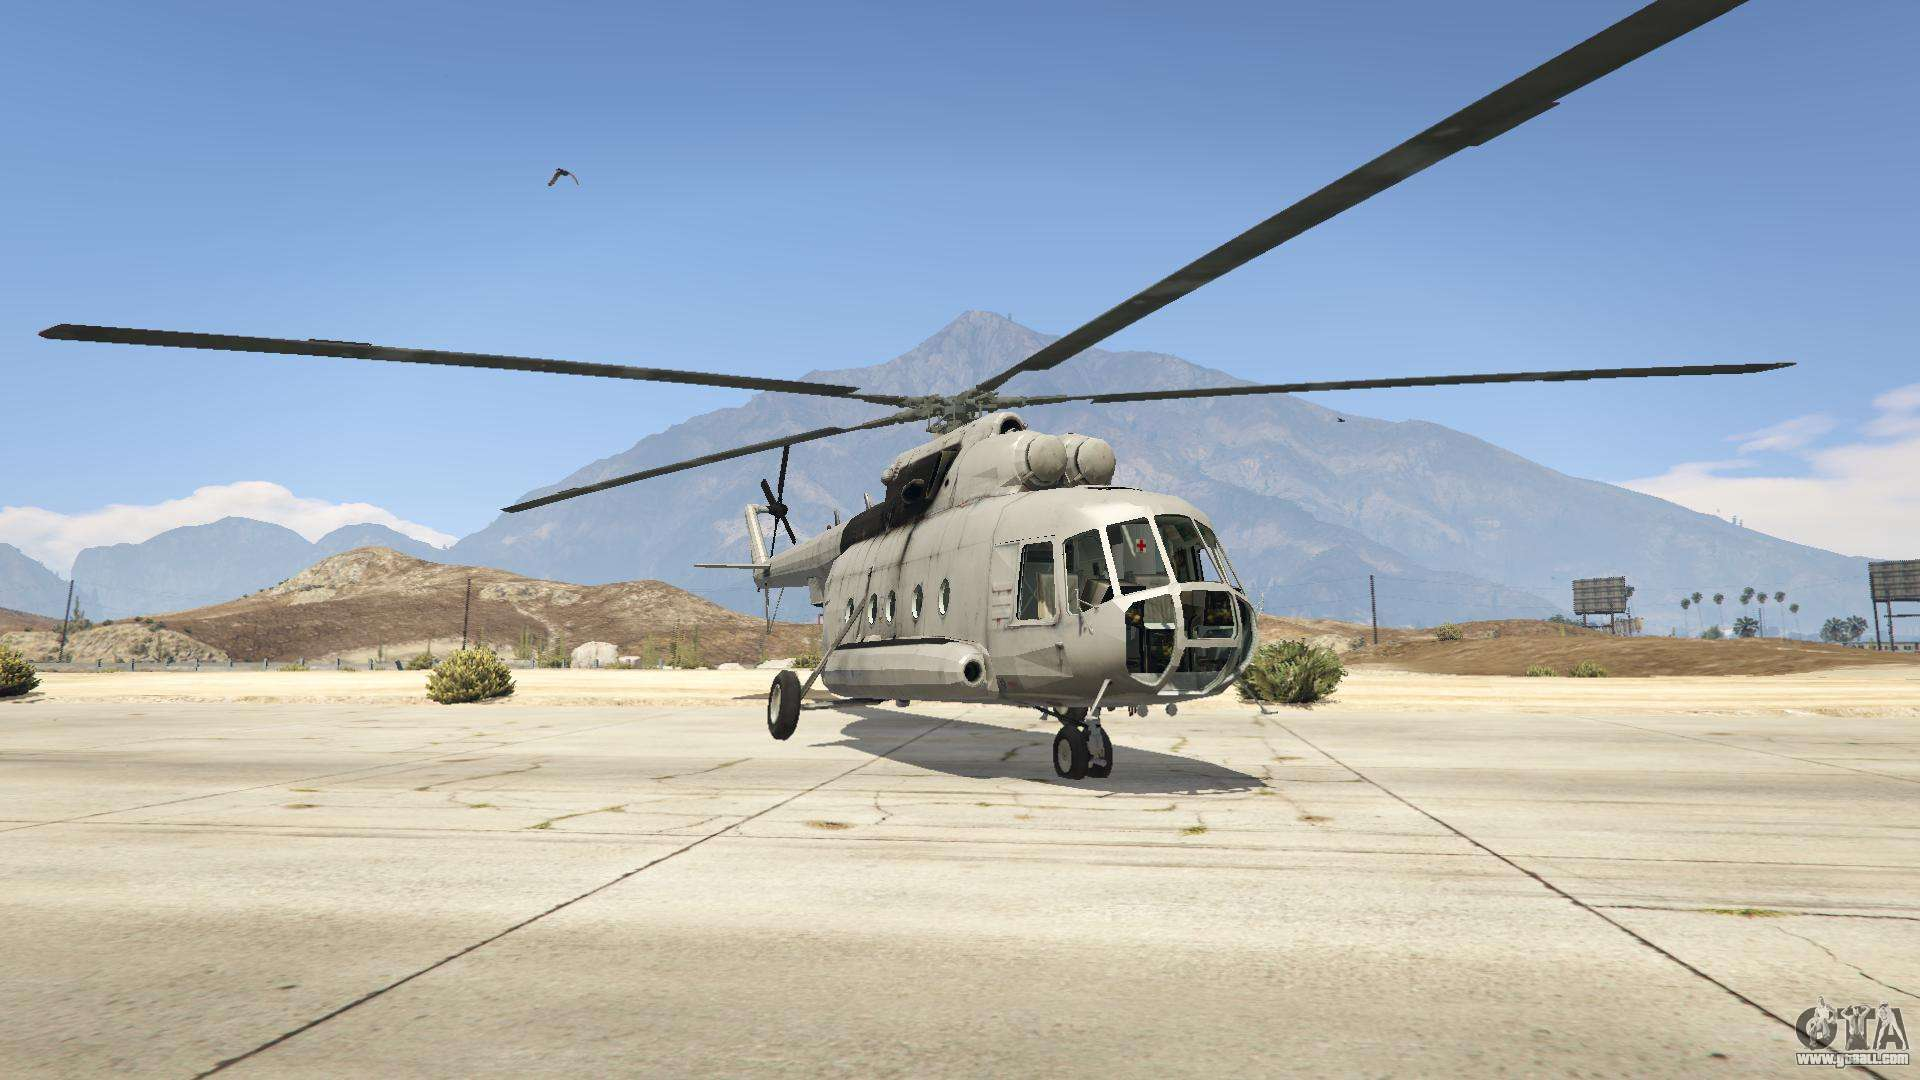 helicopter game for android with 73435 Mi 8 on 73433 Mi 28 Night Hunter further 3 moreover Ate Mi 24 Super Hind Mk Iii2 likewise Prepositions Of Place moreover Scp682 artwork.